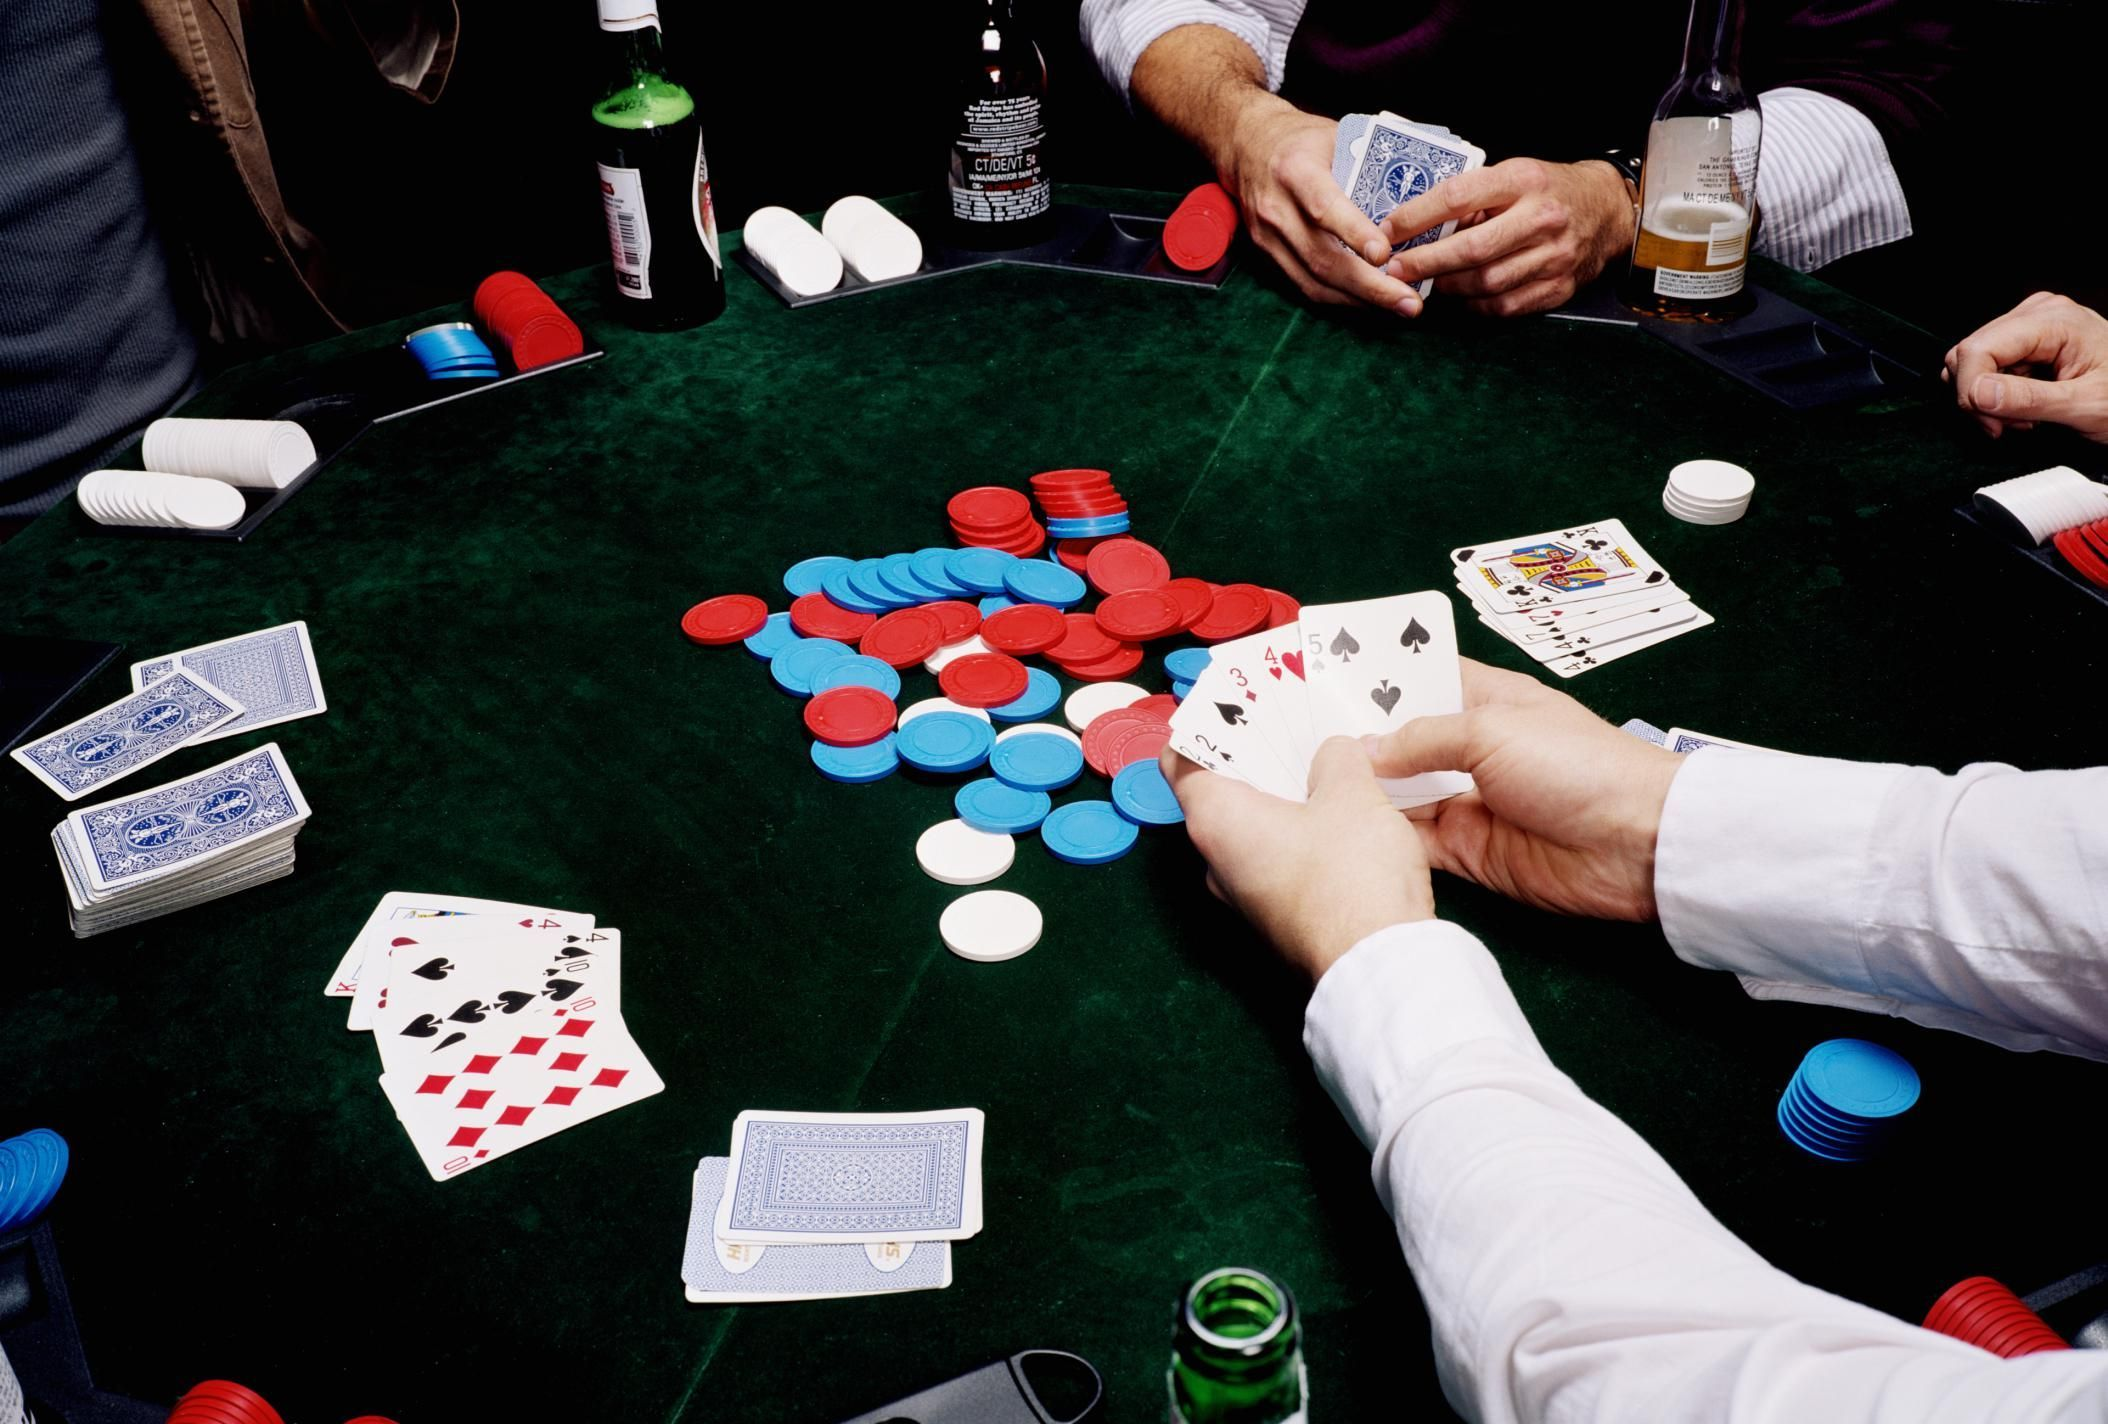 PLAY ALL TYPES OF LIVE CASINO GAMES IN ONE SITE